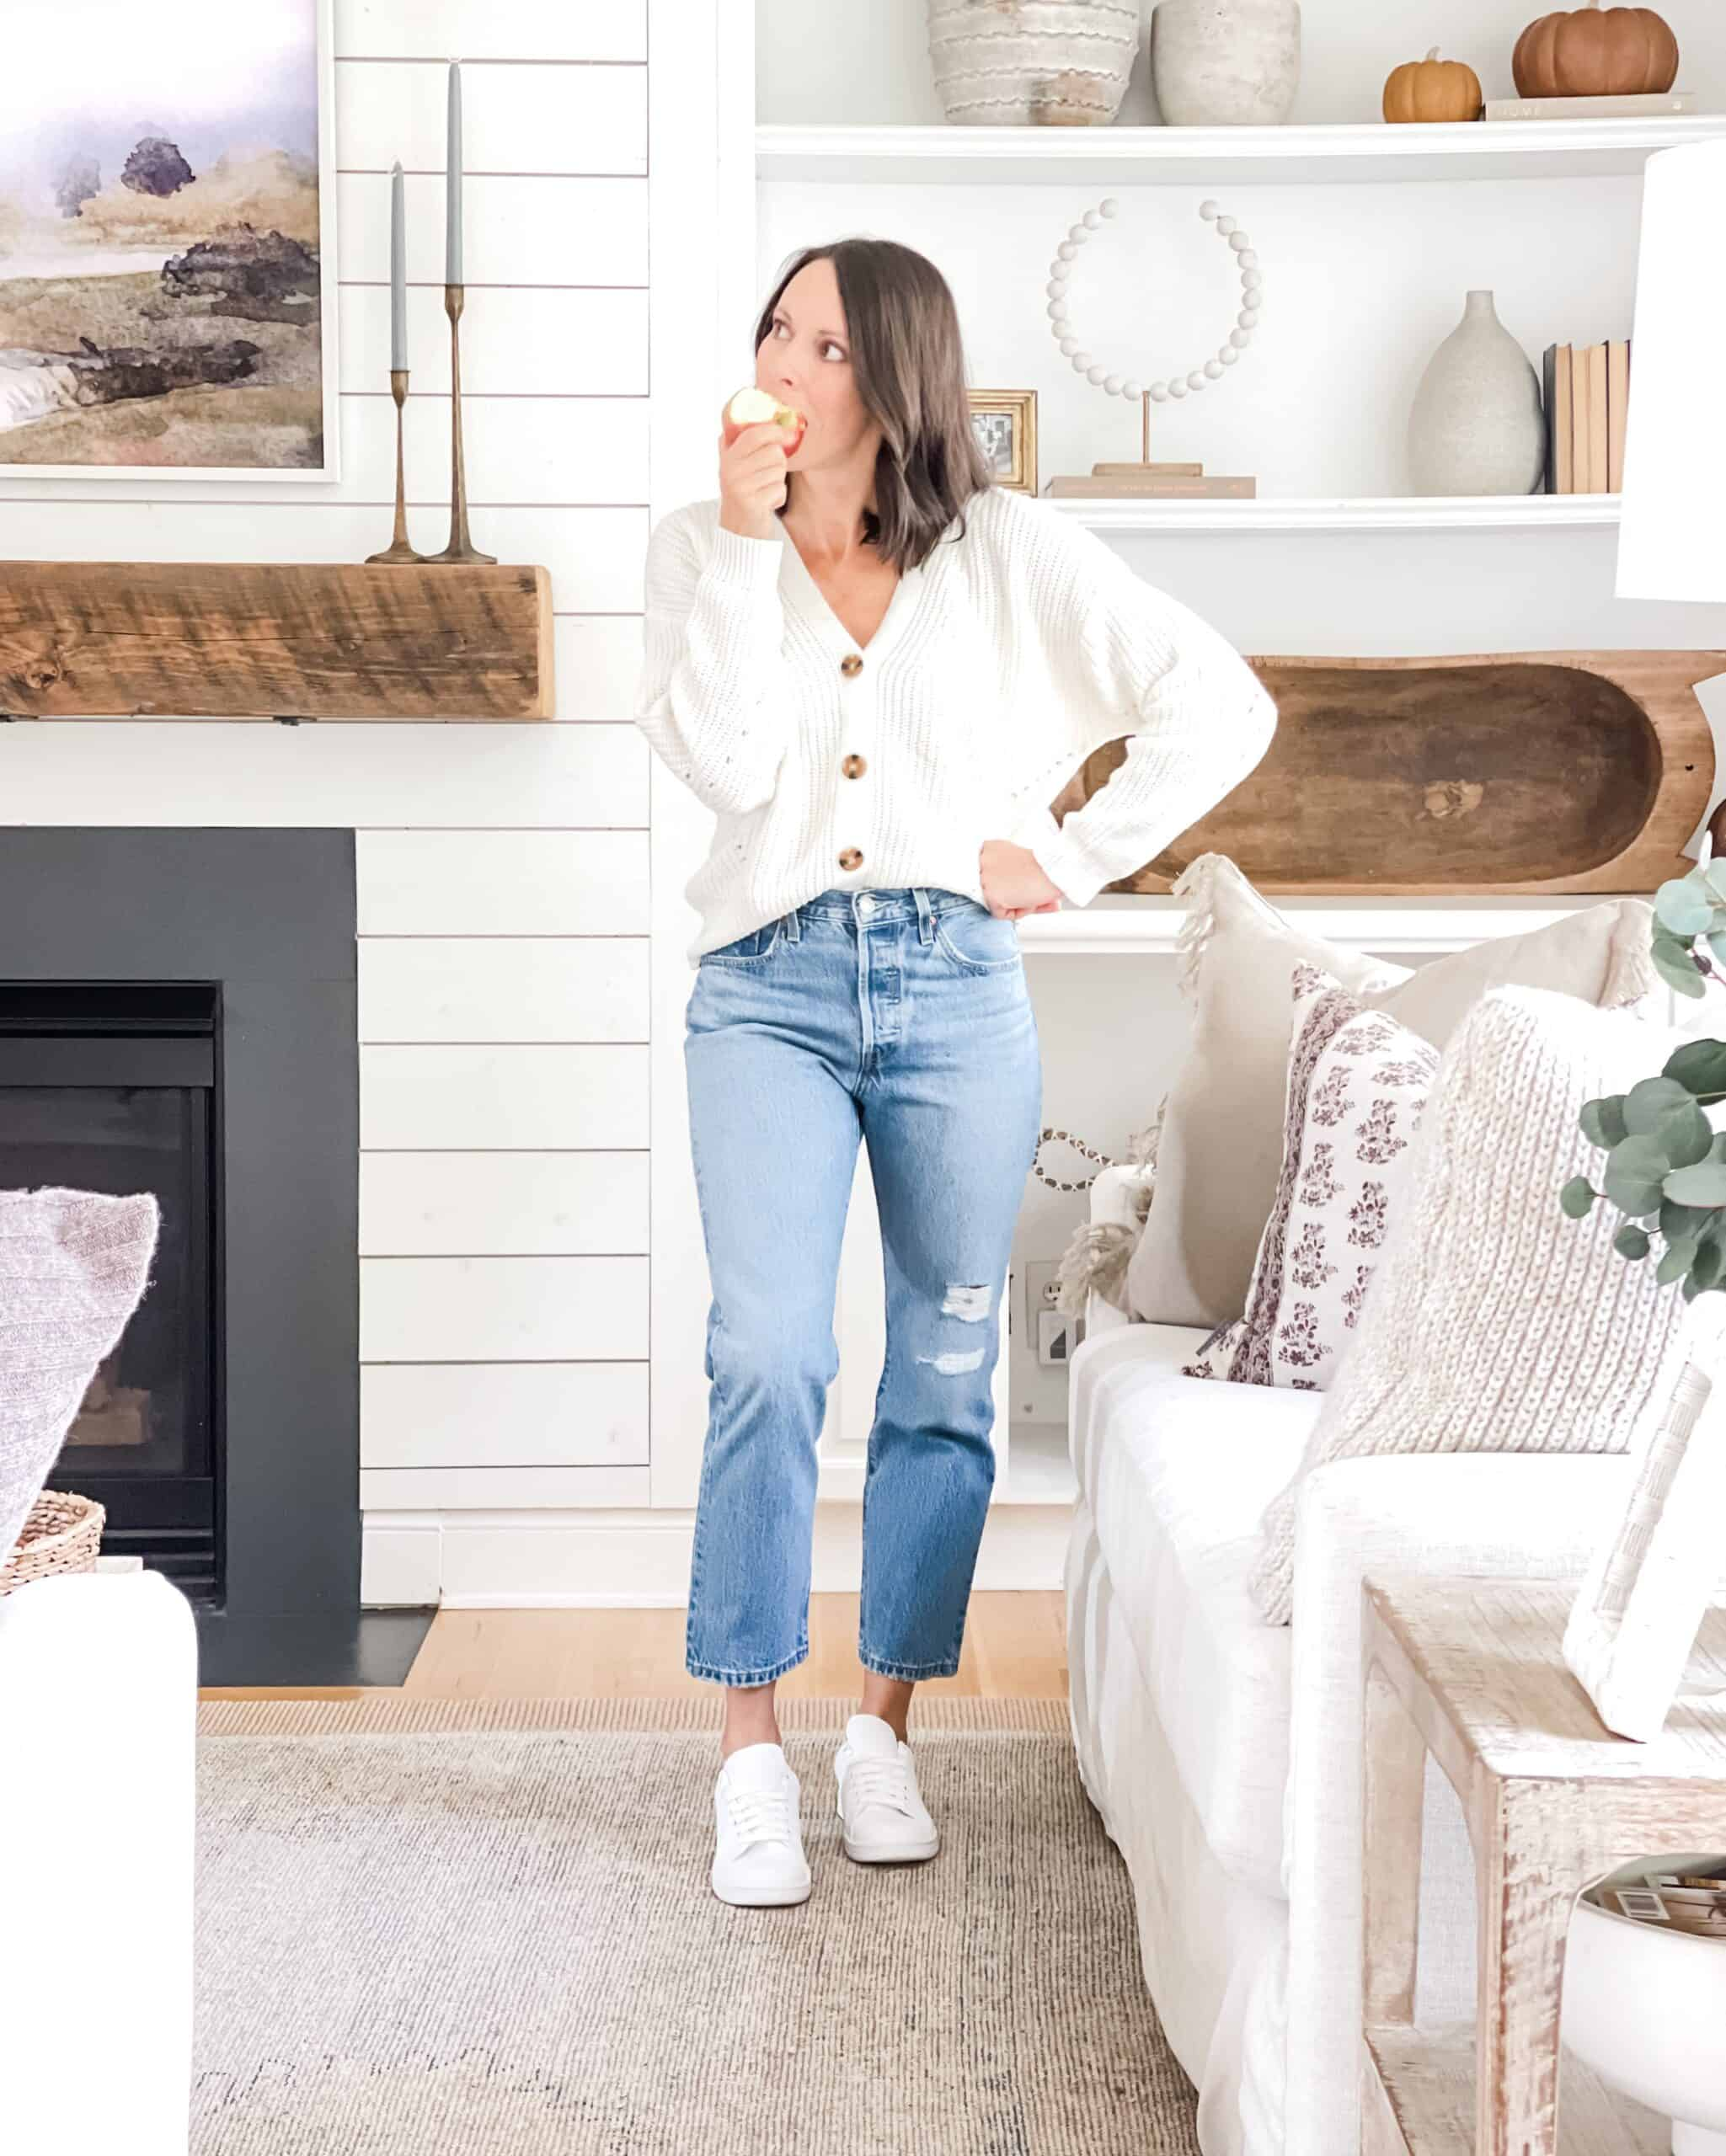 White walmart button up sweater and high rise jeans in front of fireplace.